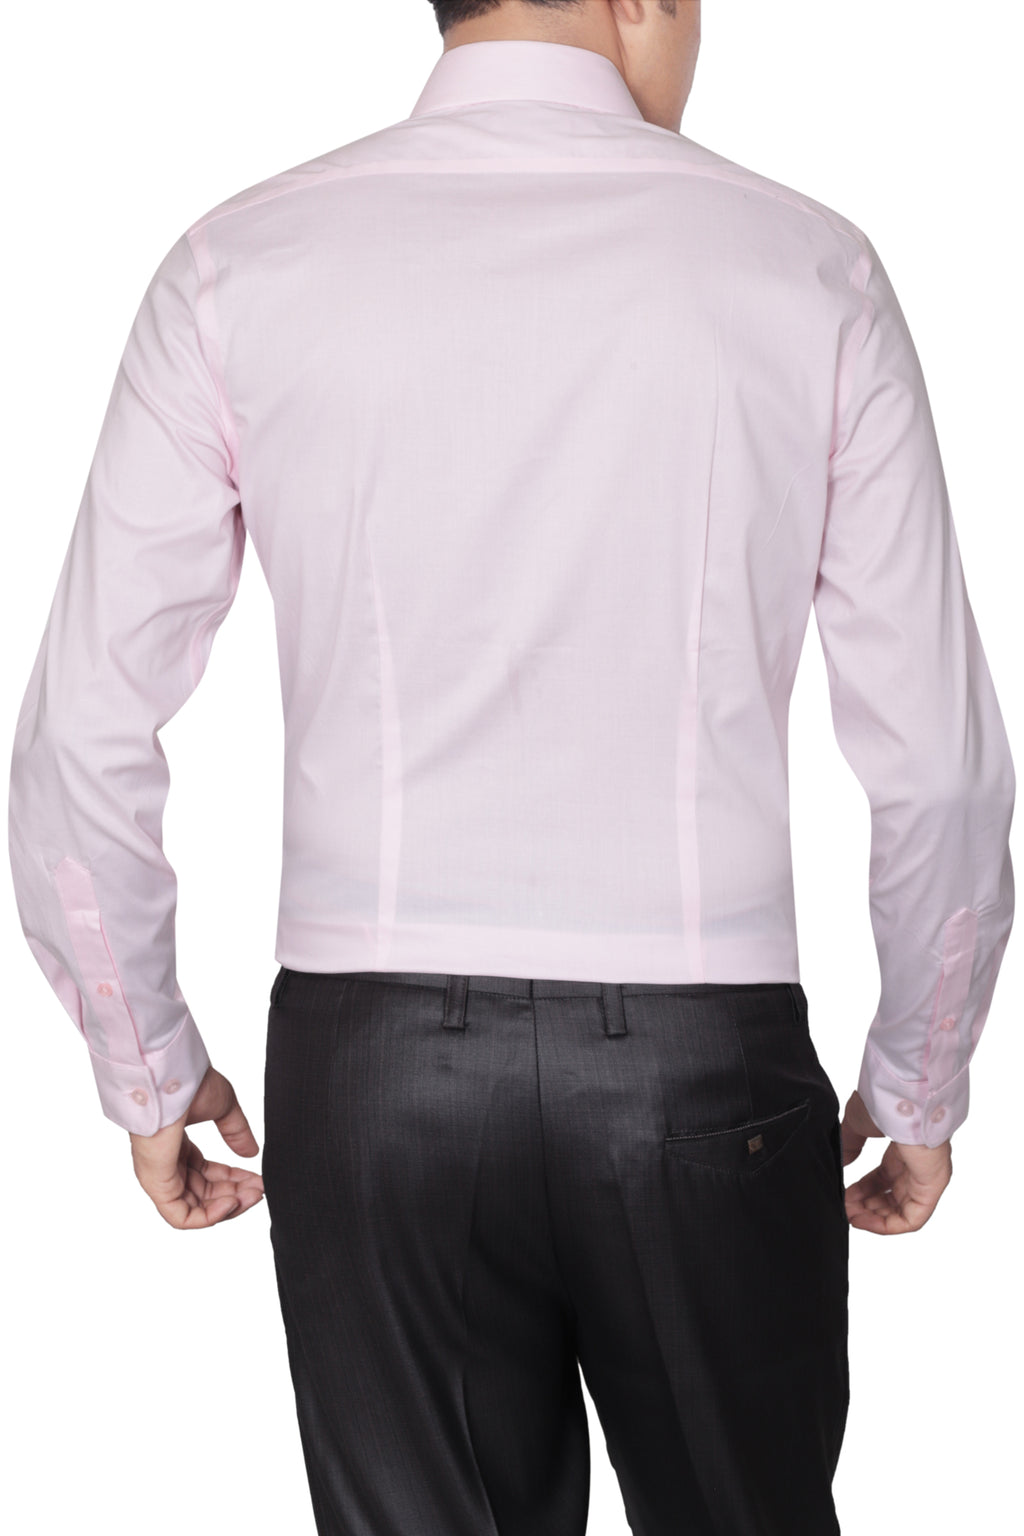 TMP - ORCHID - SLIM FIT